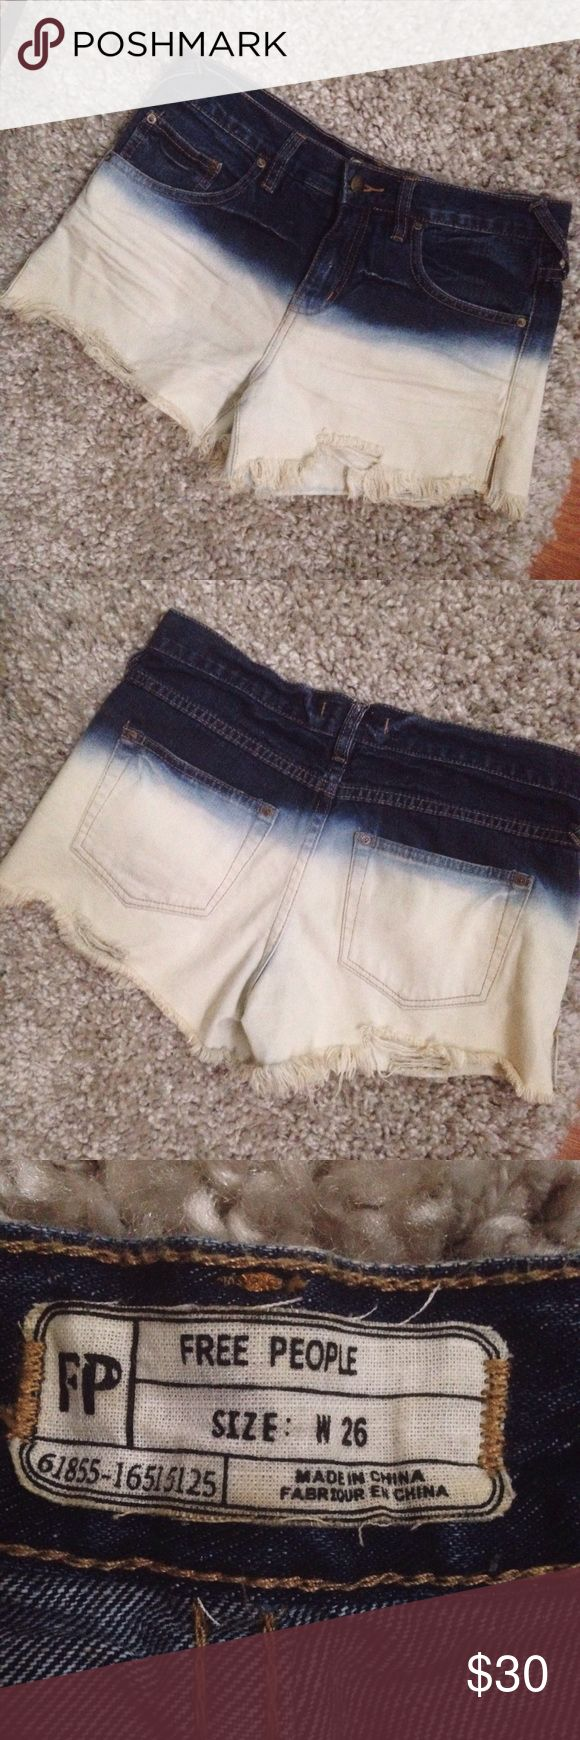 Free People Dip Dye Shorts Only wore these dip dye denim shorts a few times but they are still in great condition! Distressed ends are intentional. 😊 Free People Shorts Jean Shorts